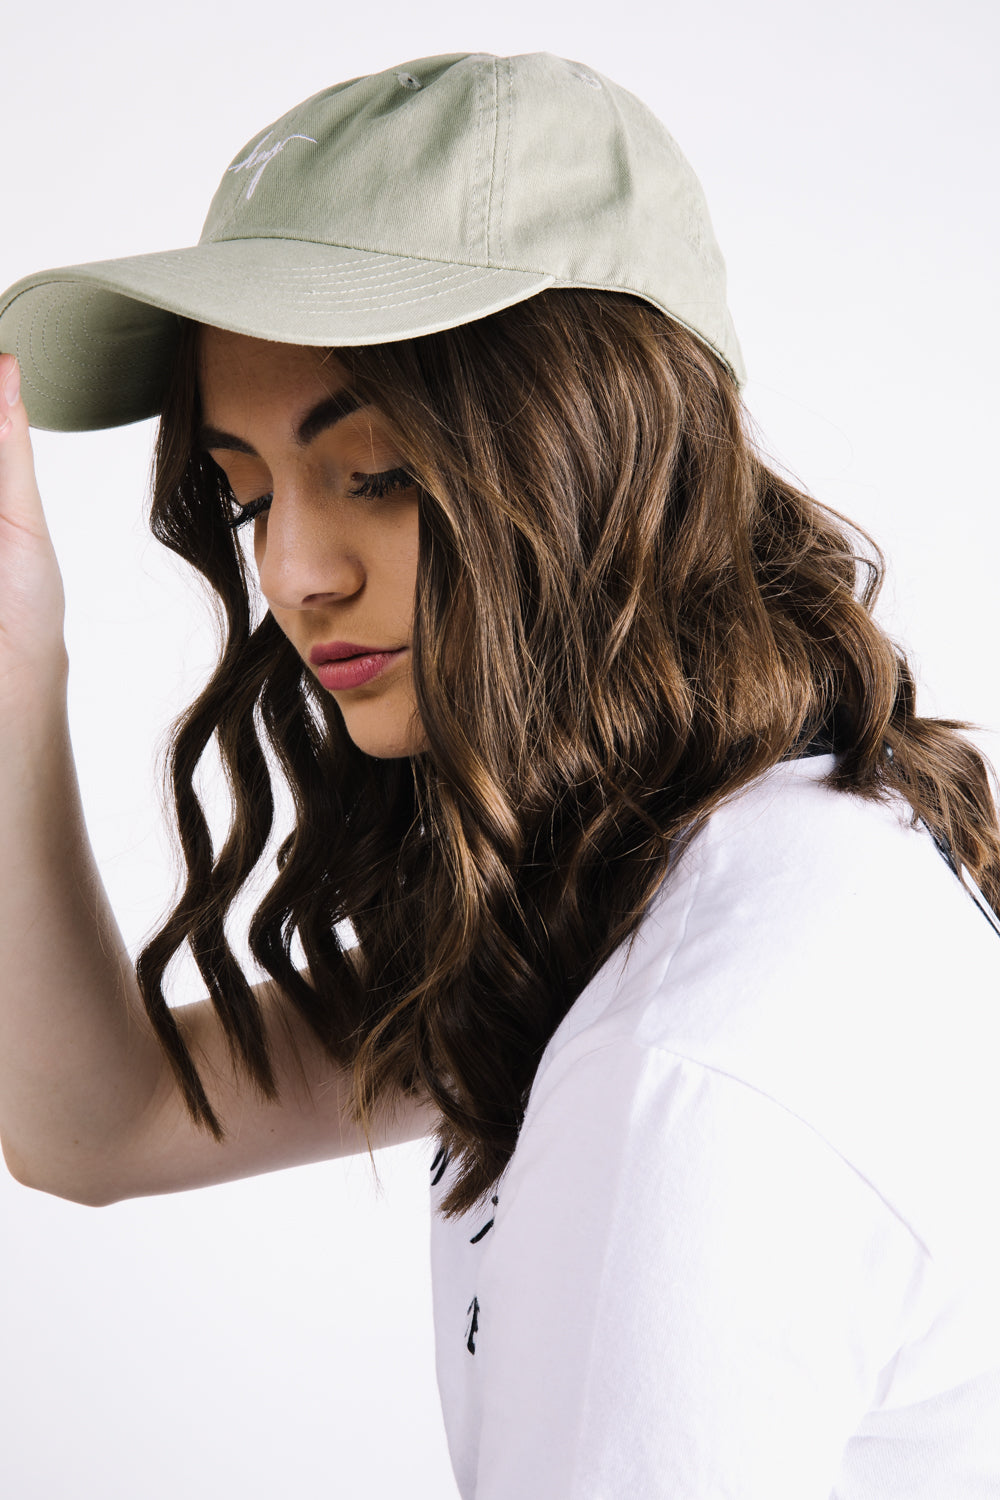 Piper & Scoot: The hey. Cap in Faded Olive